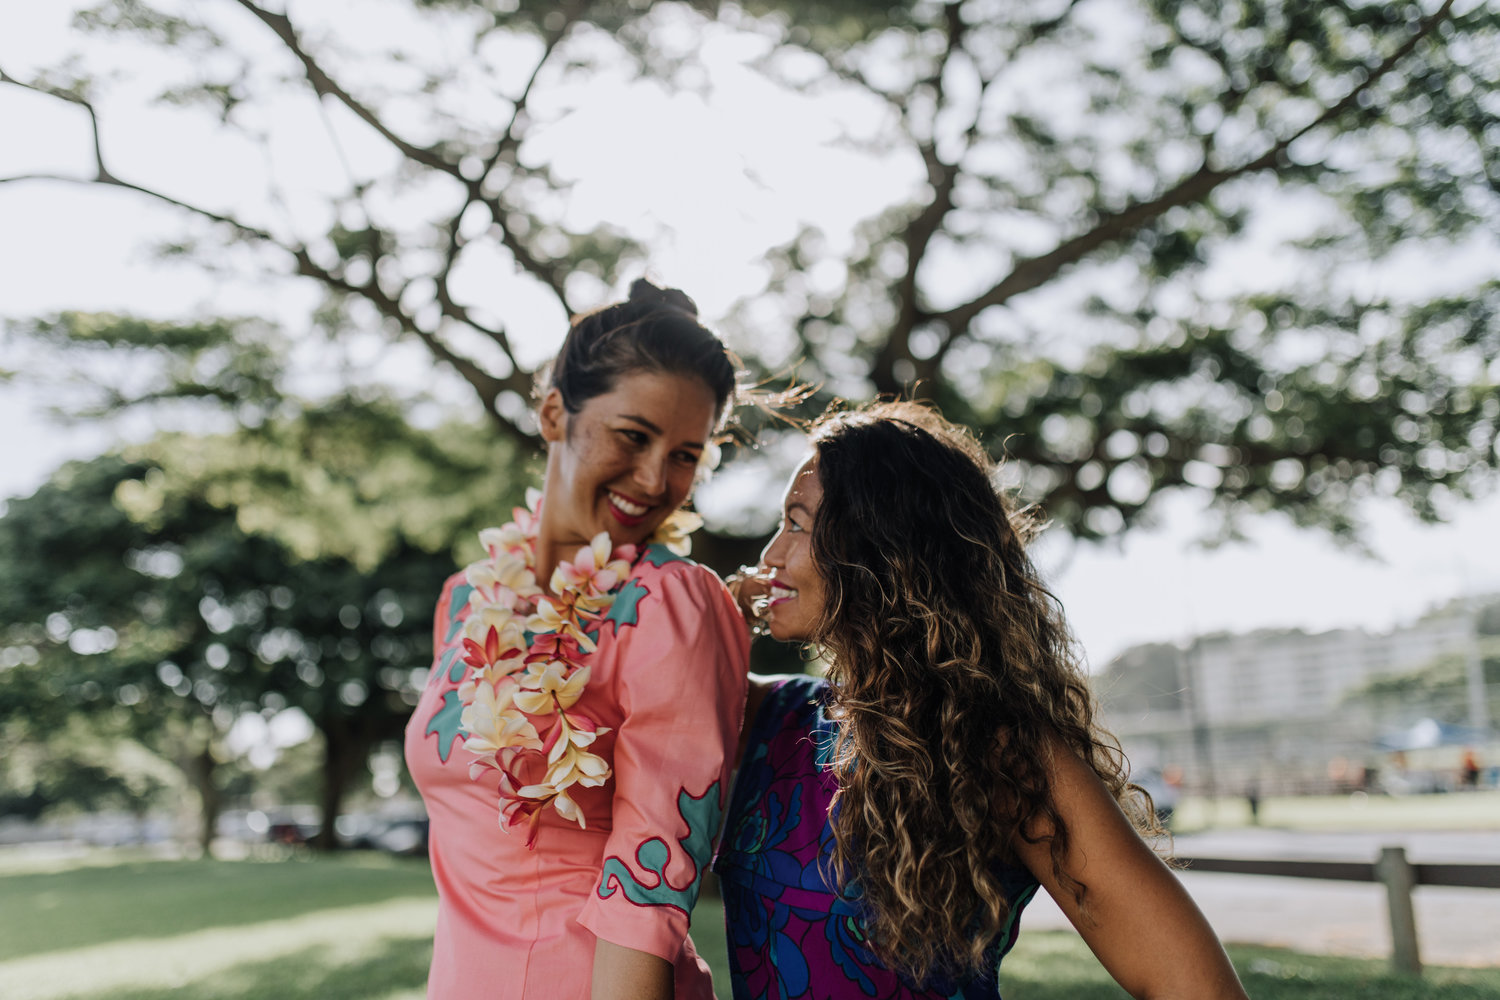 Aloha Missions - Lesley & Tamika, two Maui residents, offer experiences that inspire people to learn and live the values of aloha.